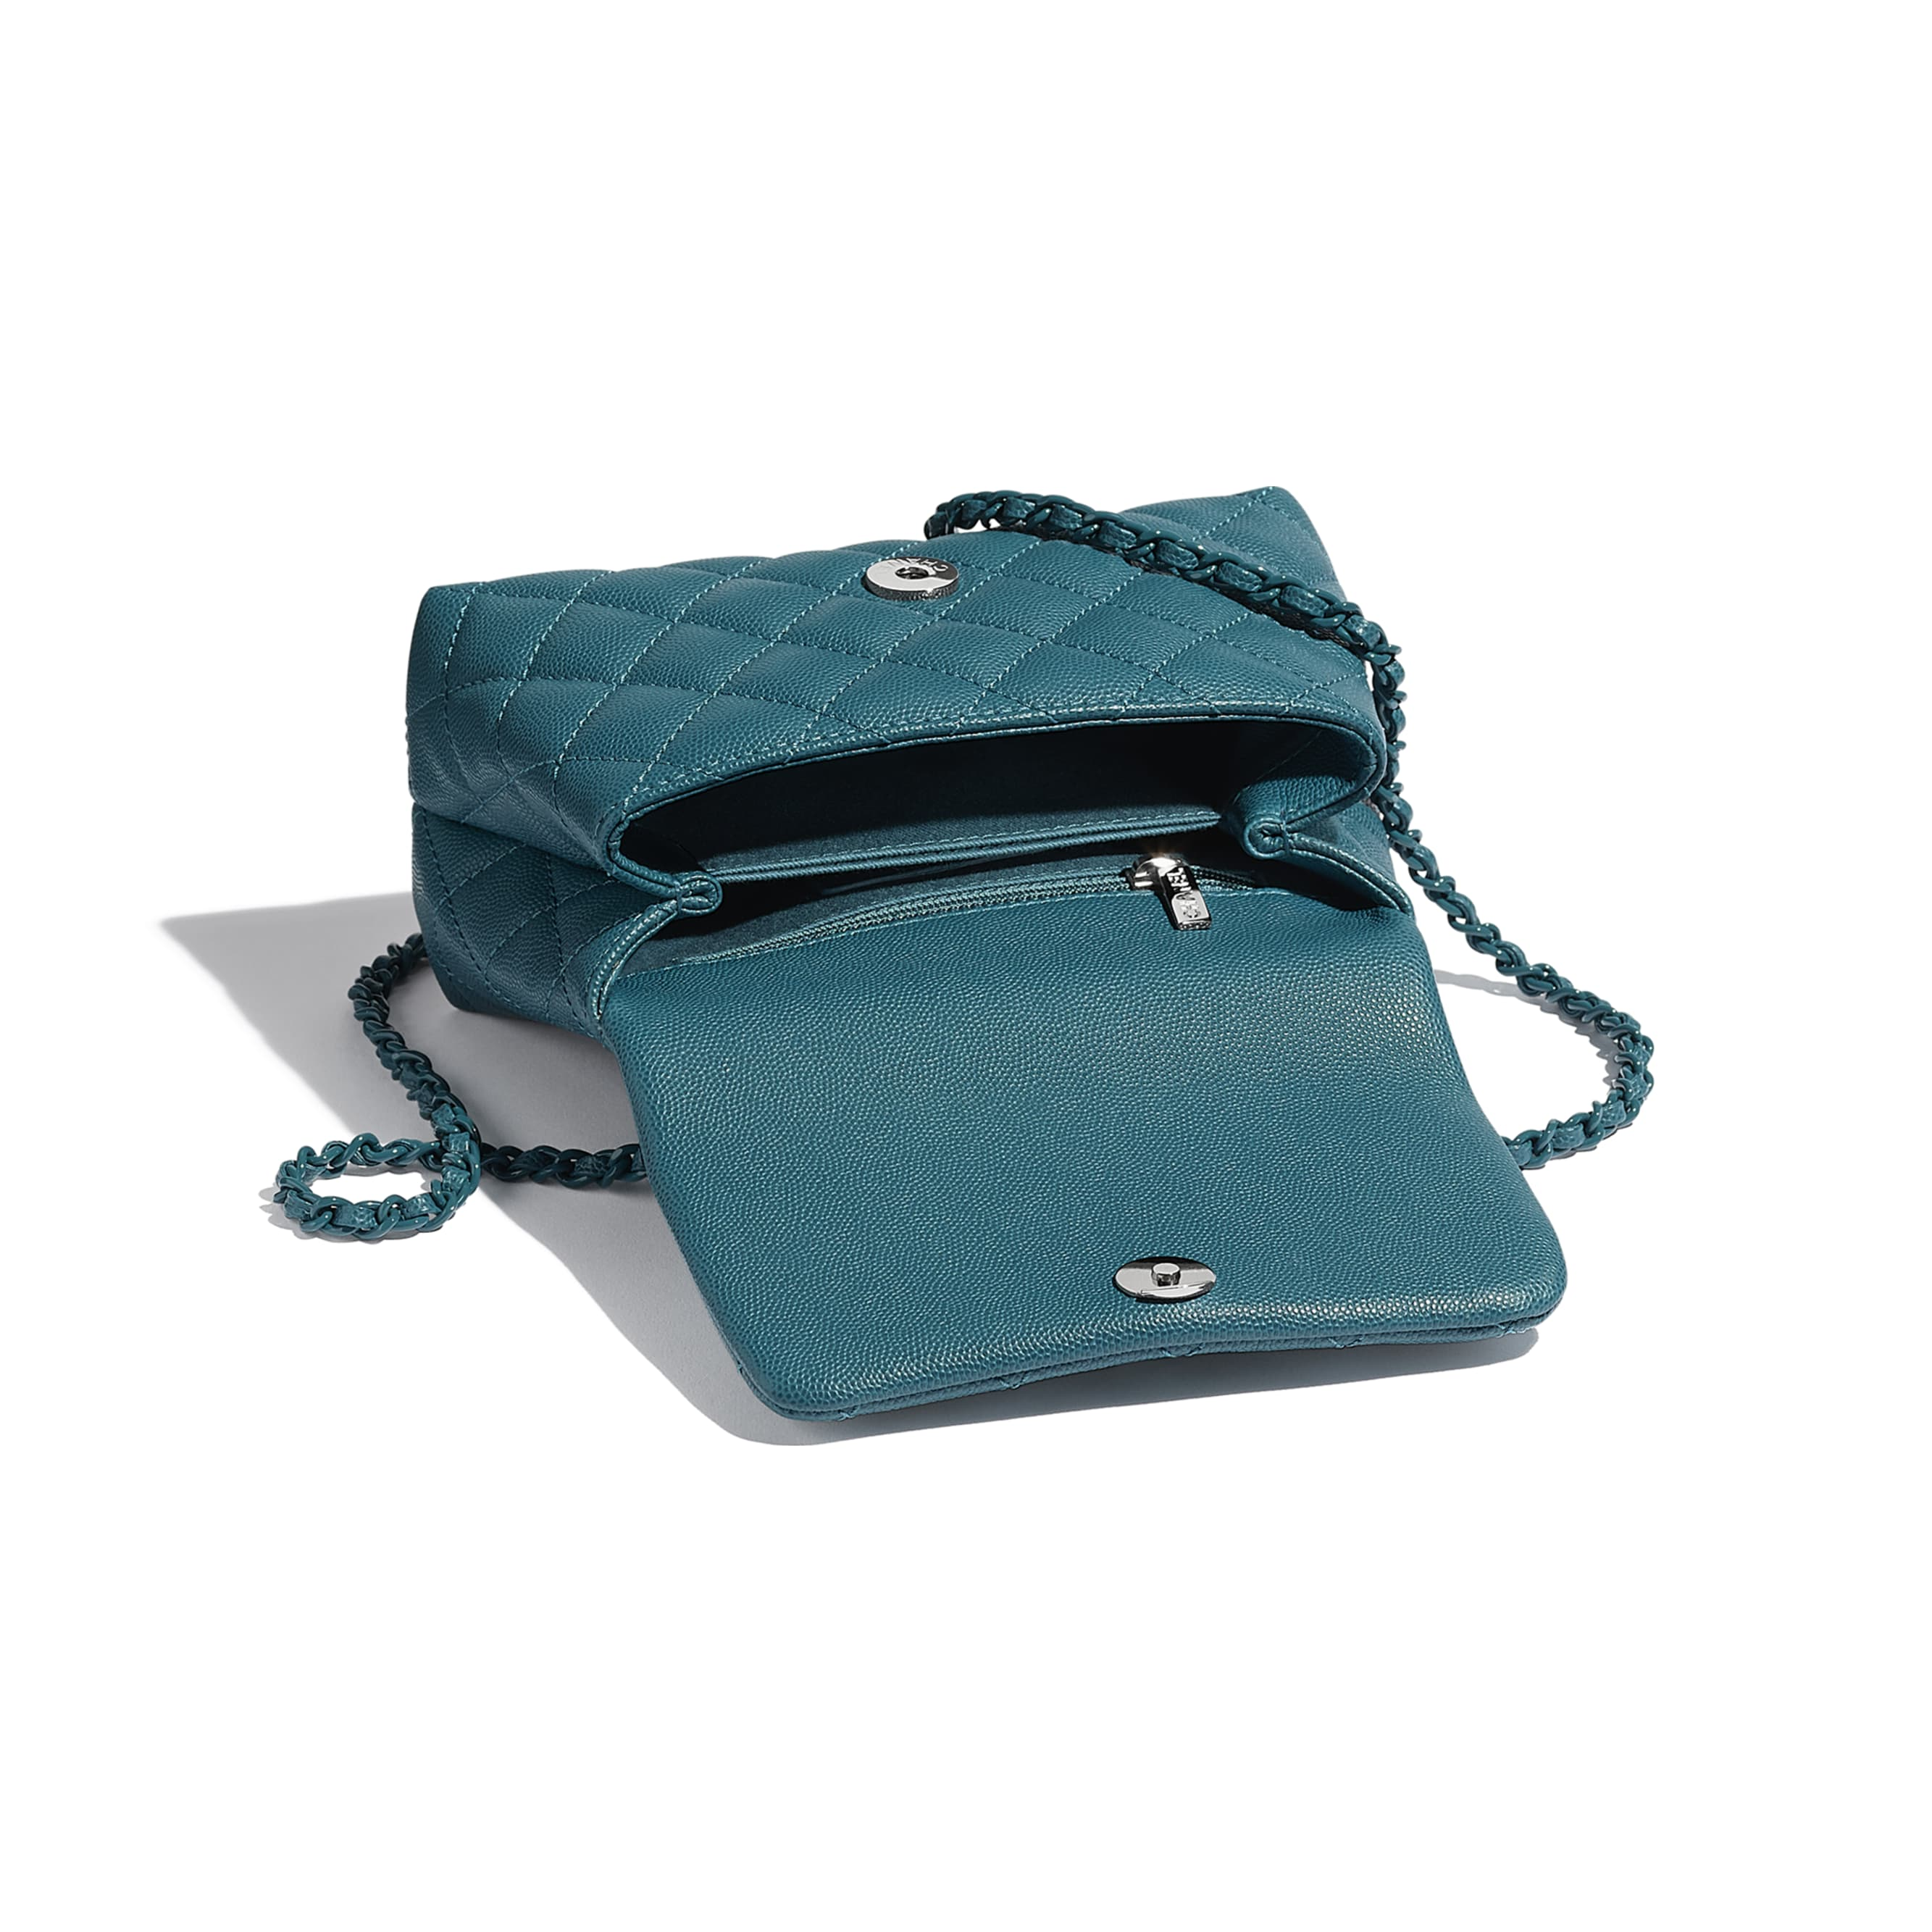 Mini Flap Bag with Handle - Turquoise - Grained Calfskin & Lacquered Metal - CHANEL - Other view - see standard sized version